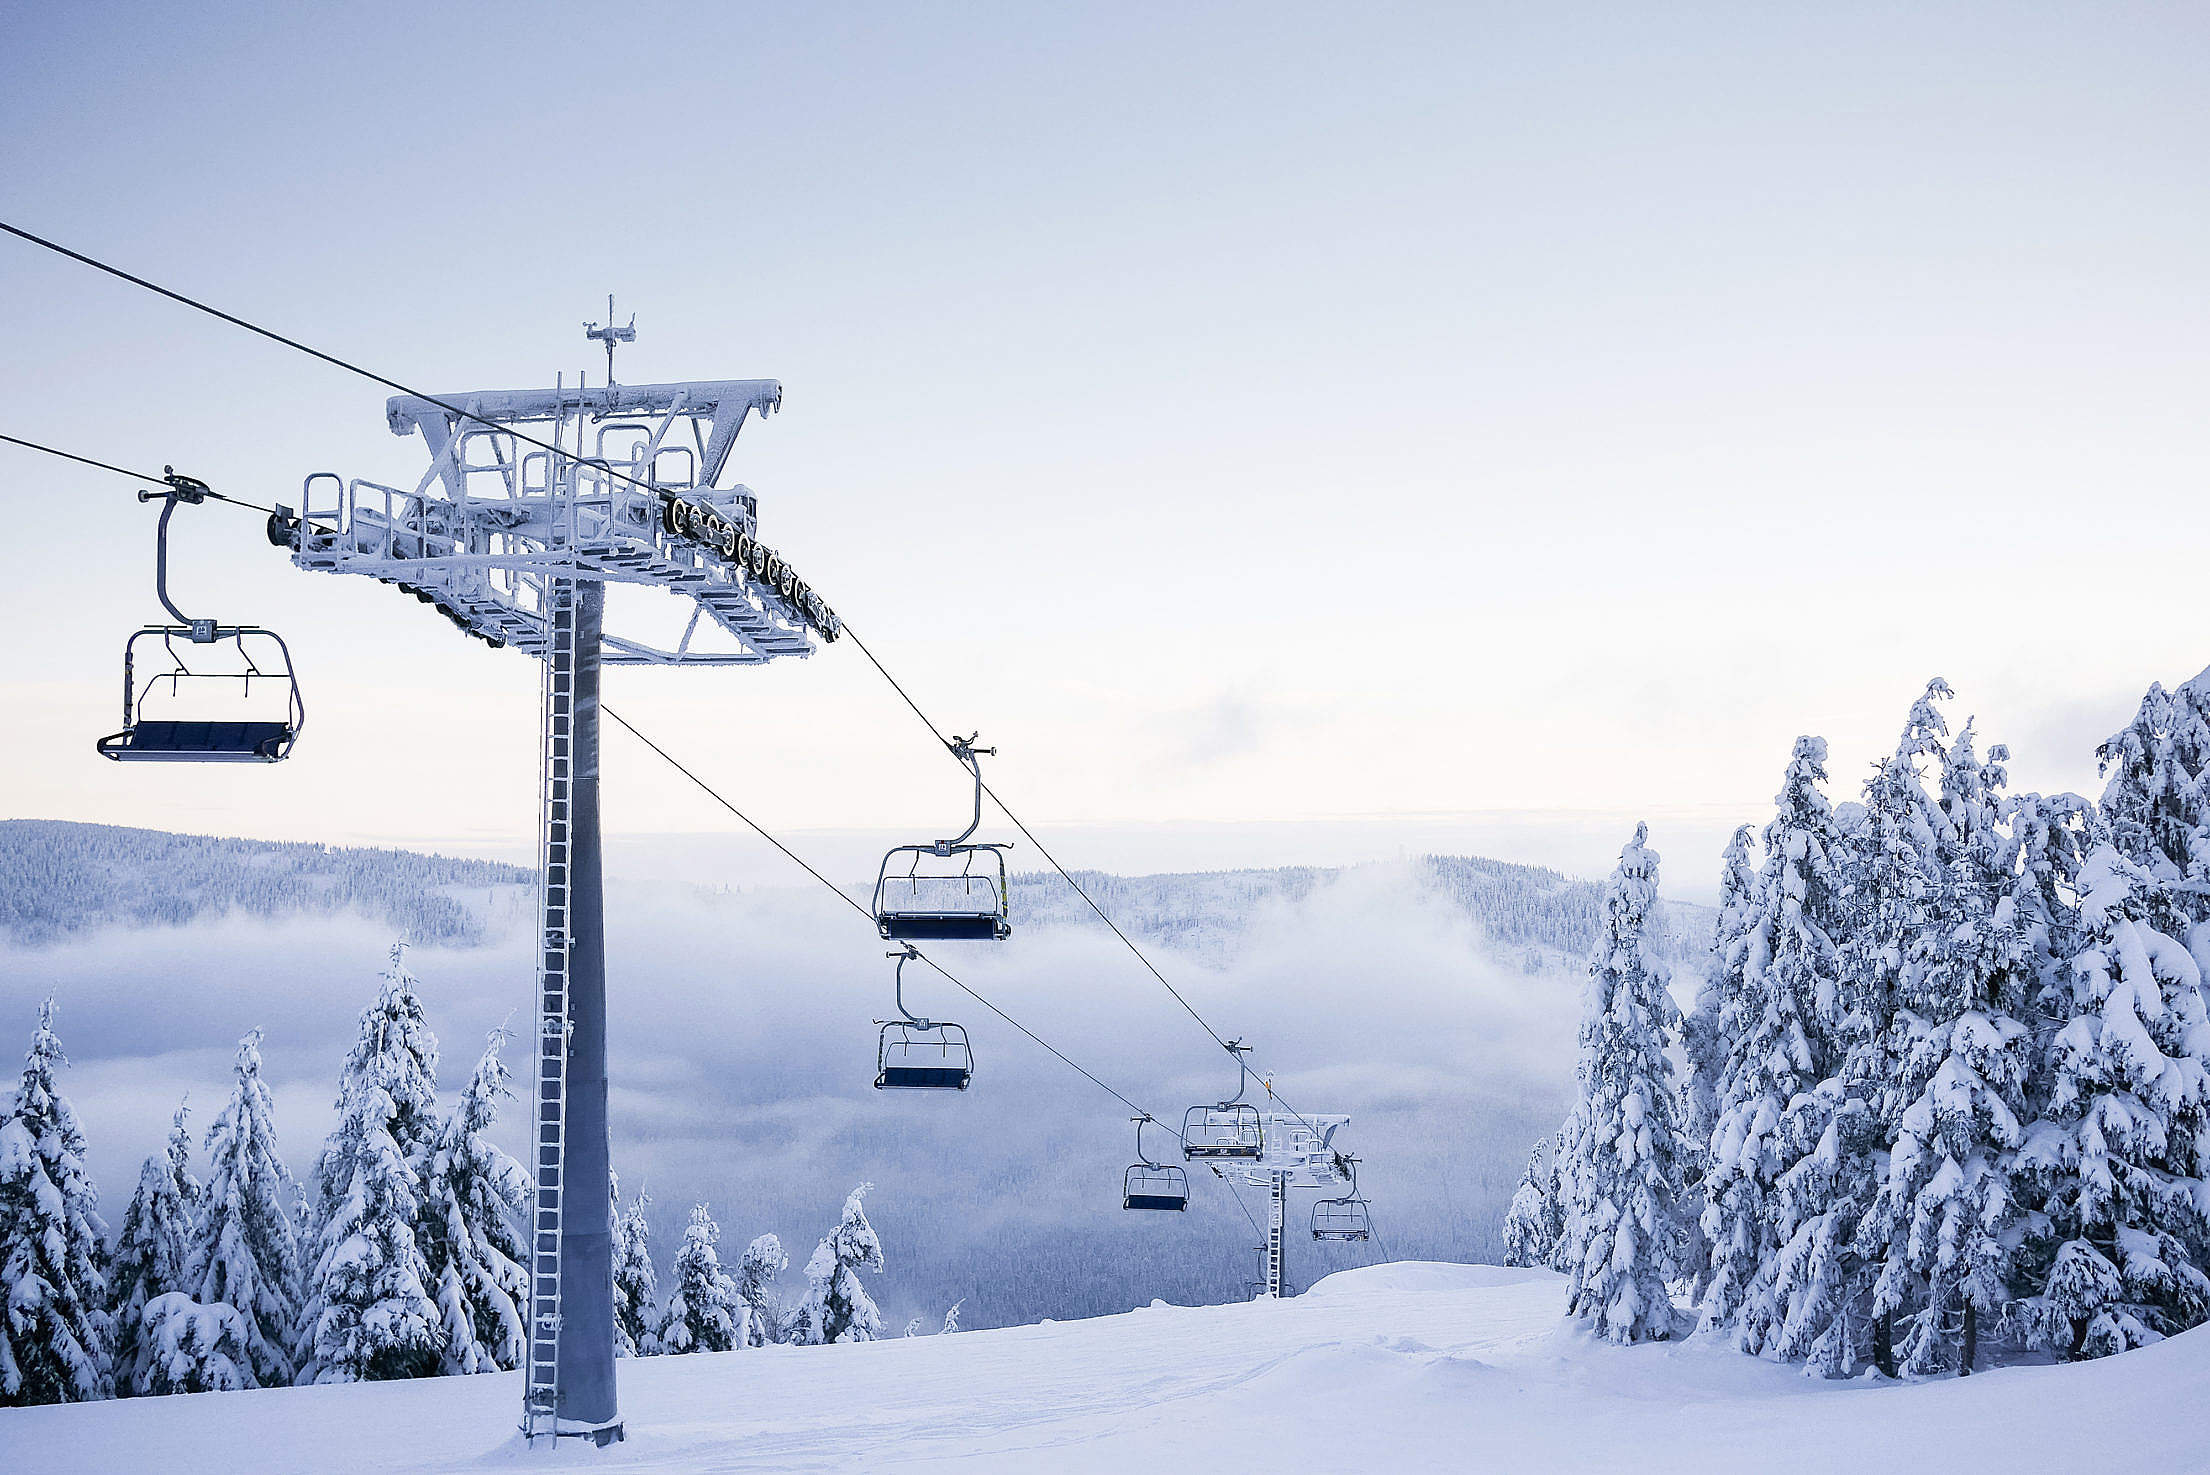 Empty Chair Ski Lift on Bright Winter Day Free Stock Photo